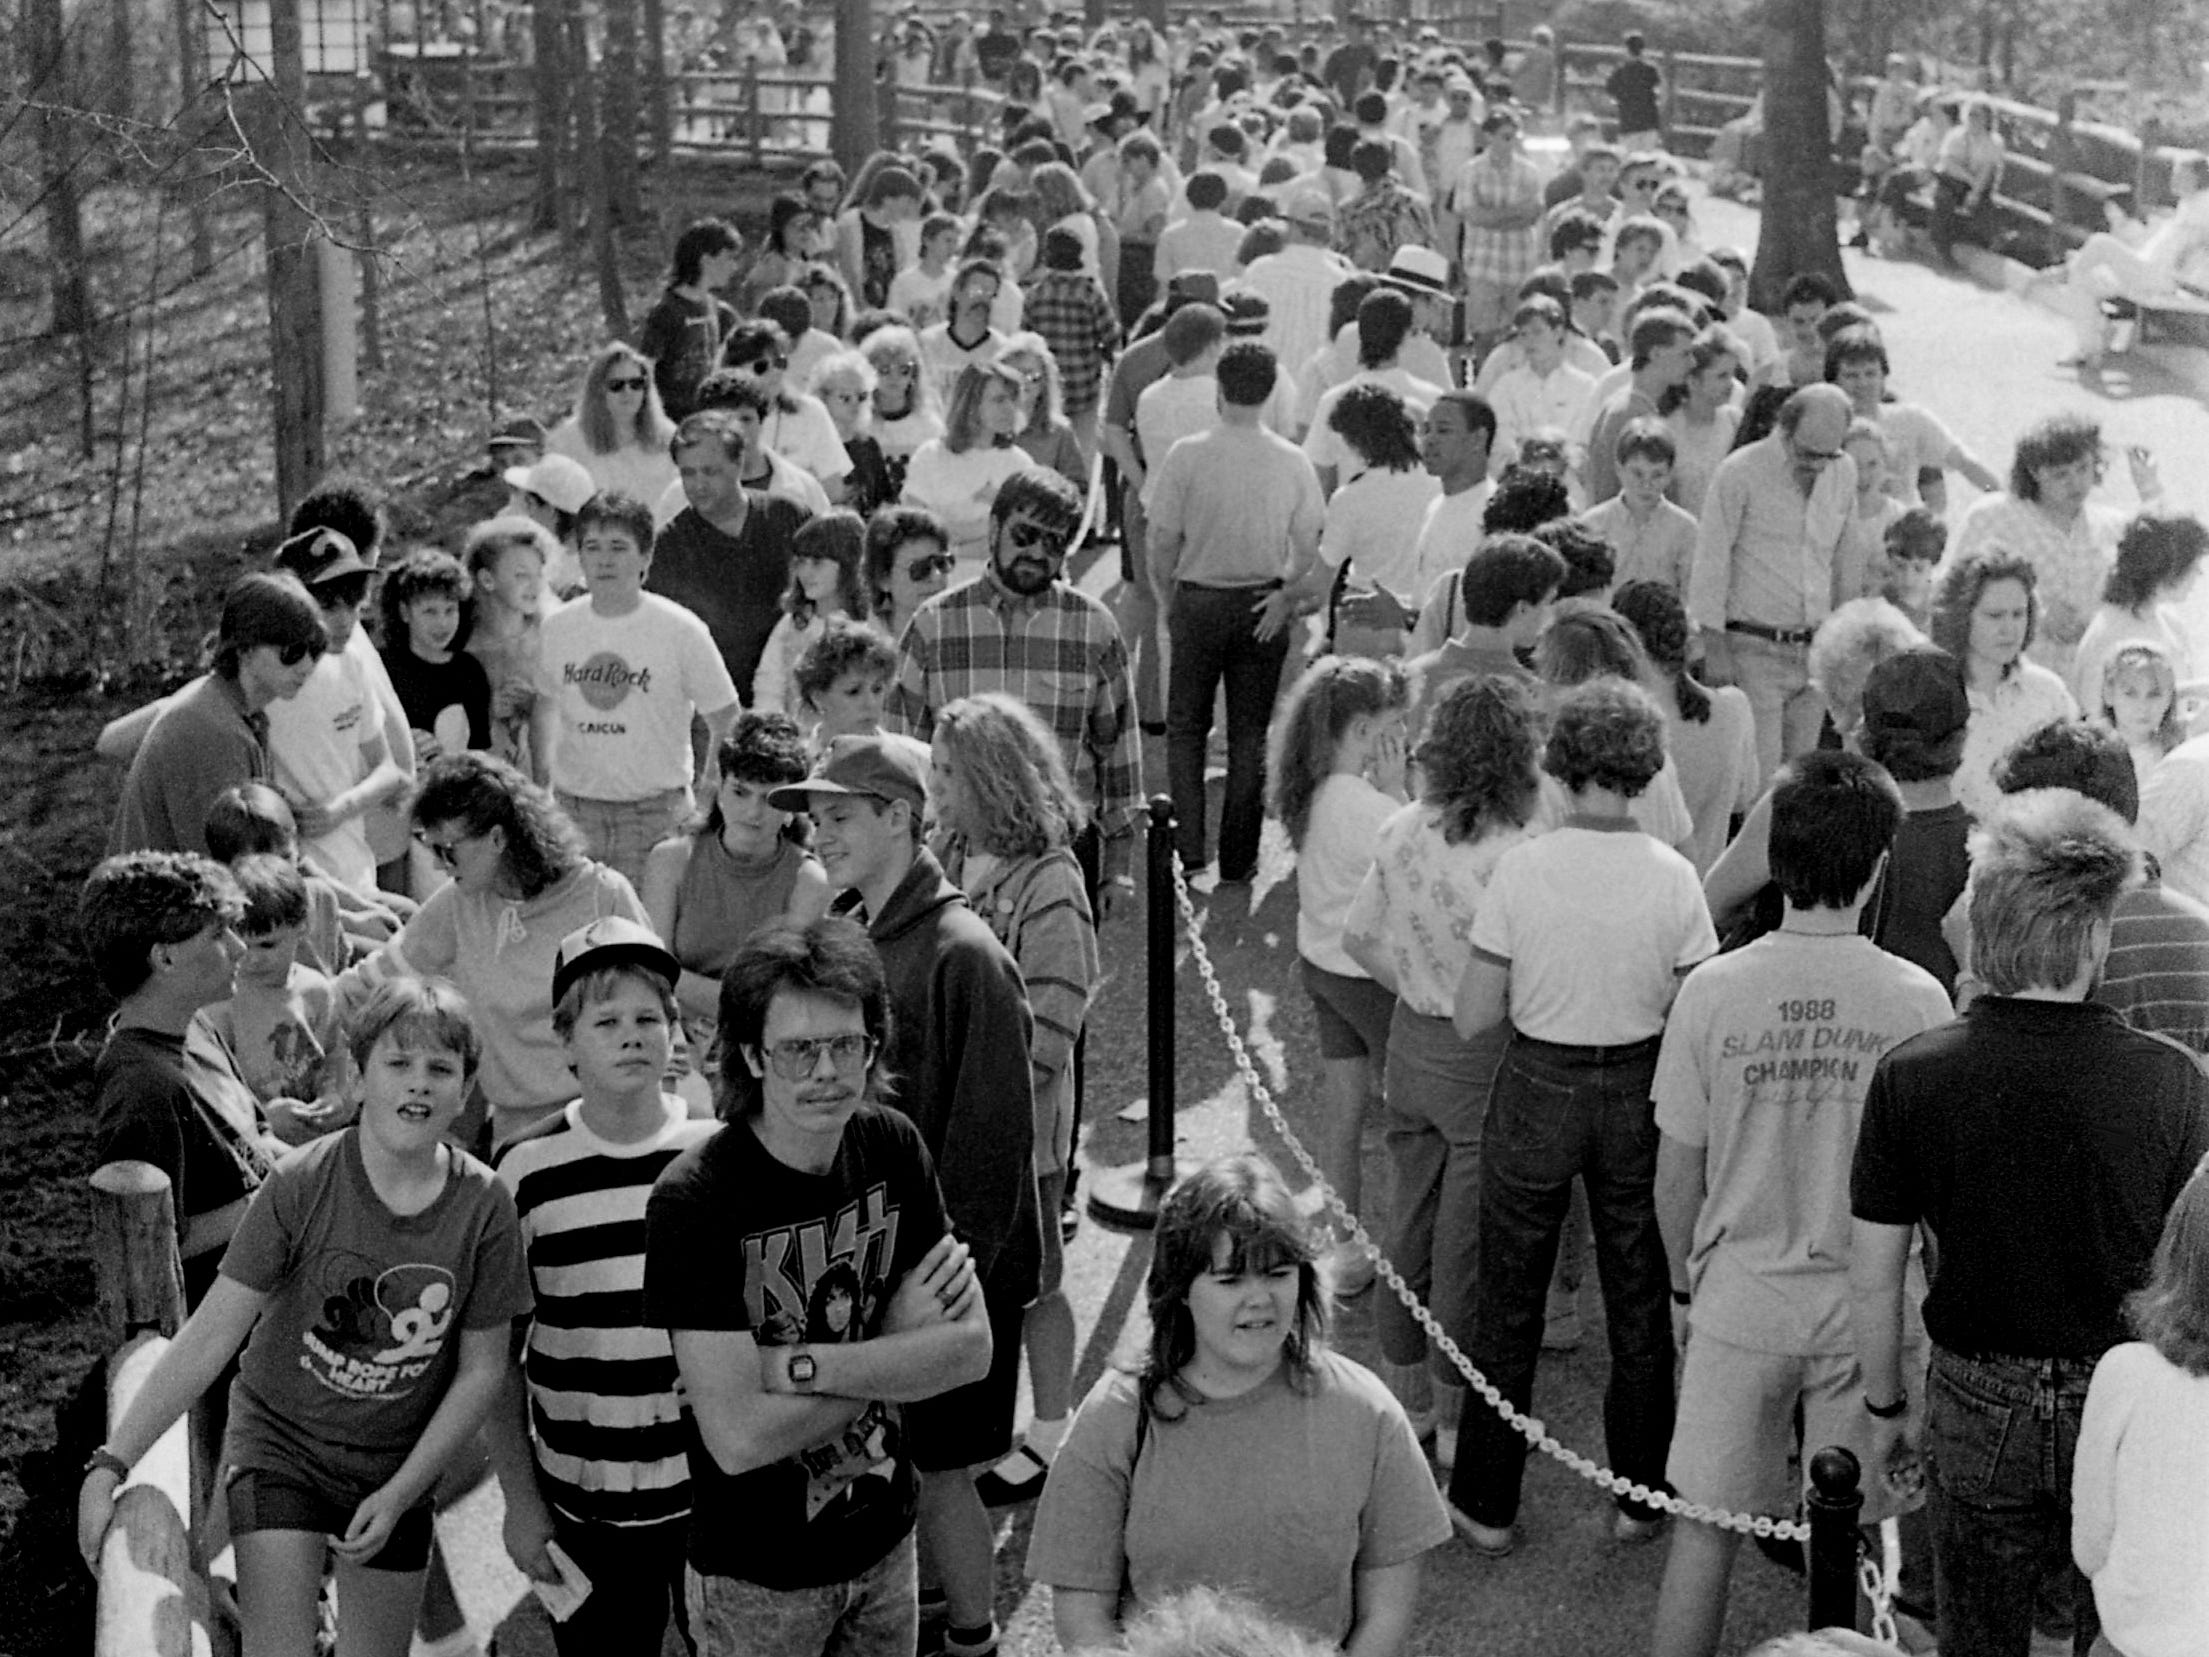 With picture-perfect weather, some of the thousands of folks wait in line for the debut of Opryland U.S.A. theme park's new $7 million ride, Chaos, on opening day of the 18th season March 25, 1989.